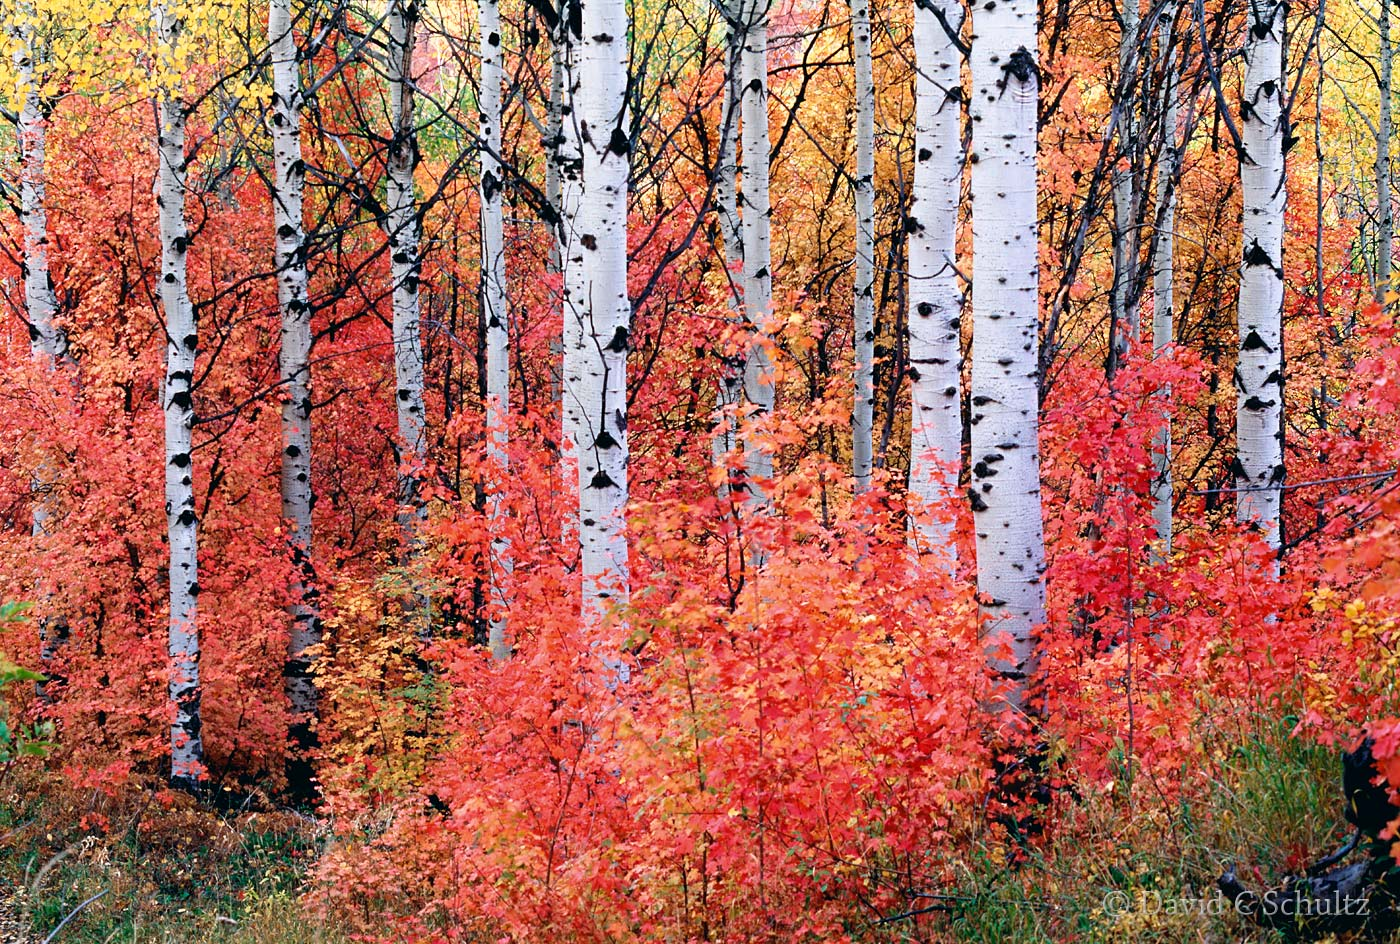 Fall colors in the Wasatch Mountains, Utah - Image #3-906